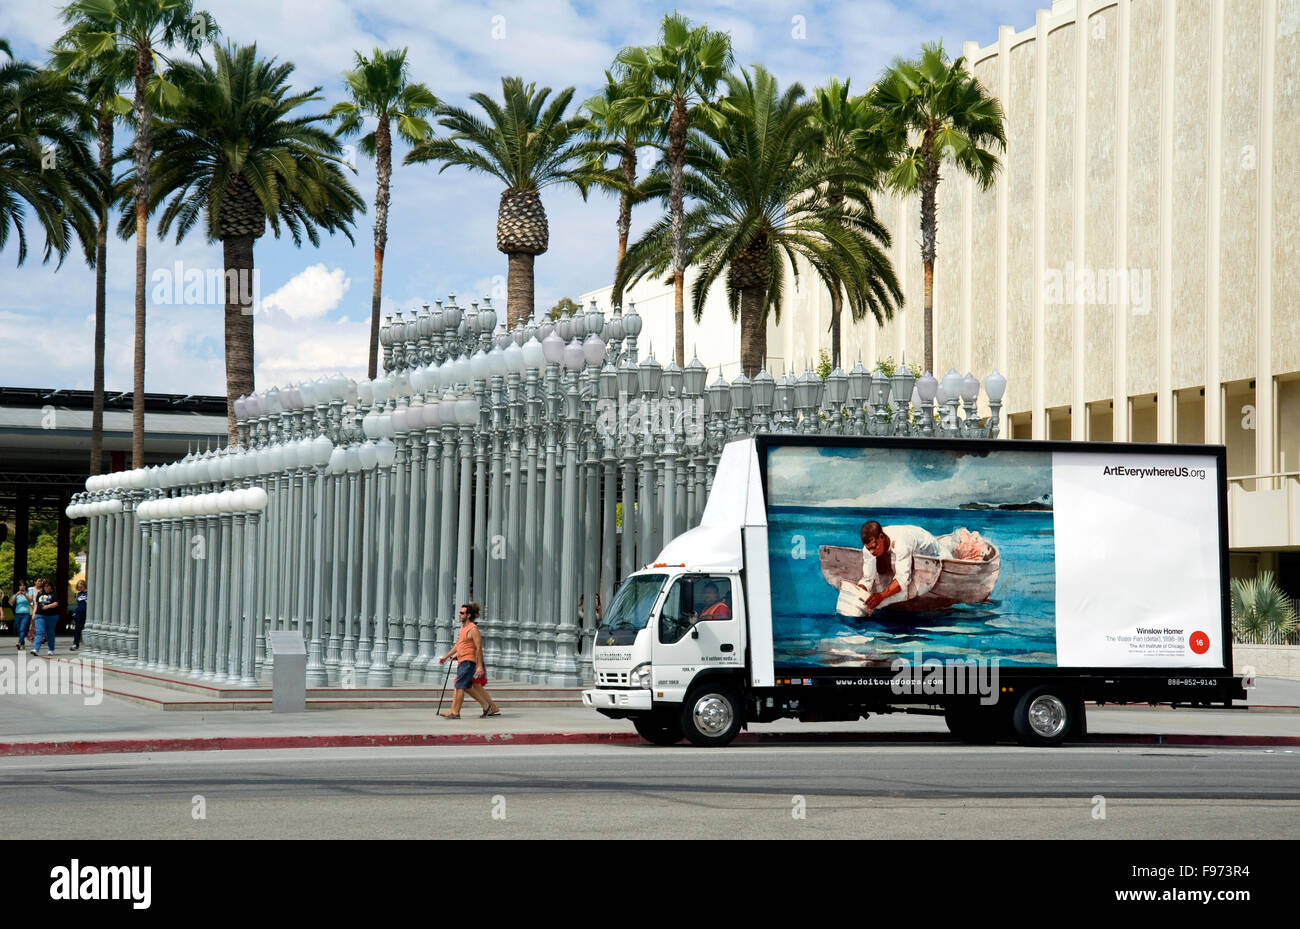 A Winslow Homer Painting Is Reproduced On Mobile Billboard Passing In Front Of The Urban Light Installation At Los Angeles County Museum Art During